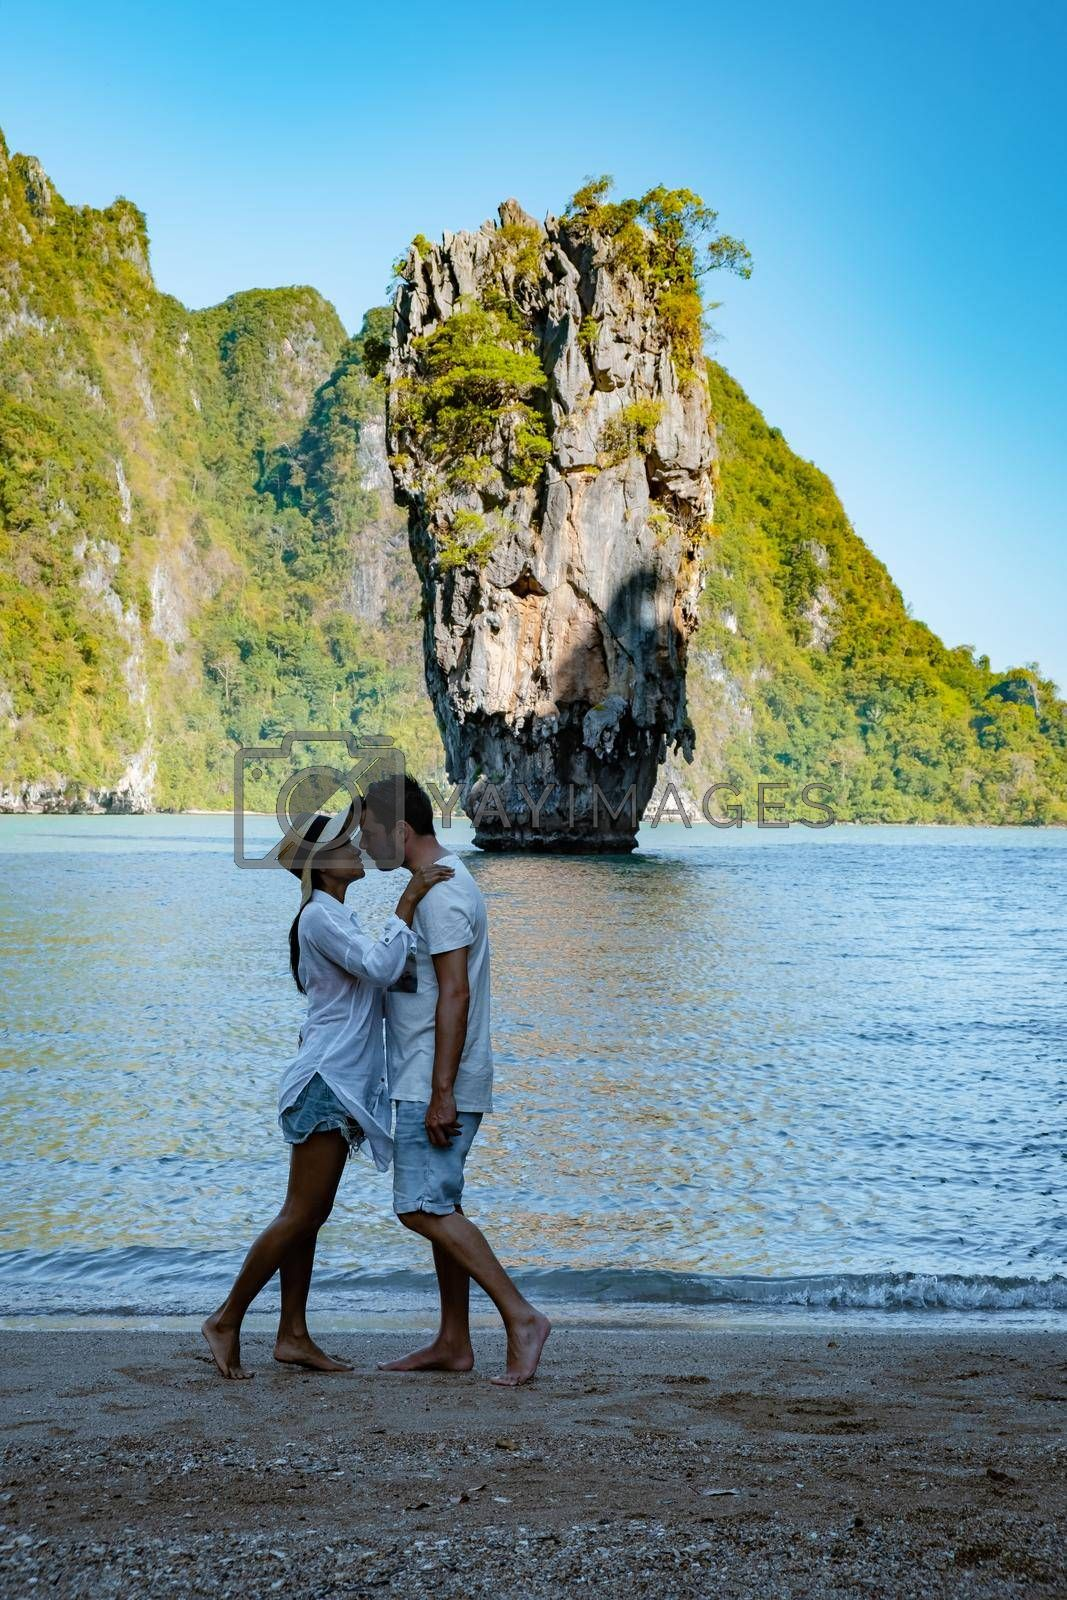 James Bond island near Phuket in Thailand. Famous landmark and famous travel destination, couple men and woman mid age visiting James Bond island in Krabi Thailand. European man and Asian woman on vacation